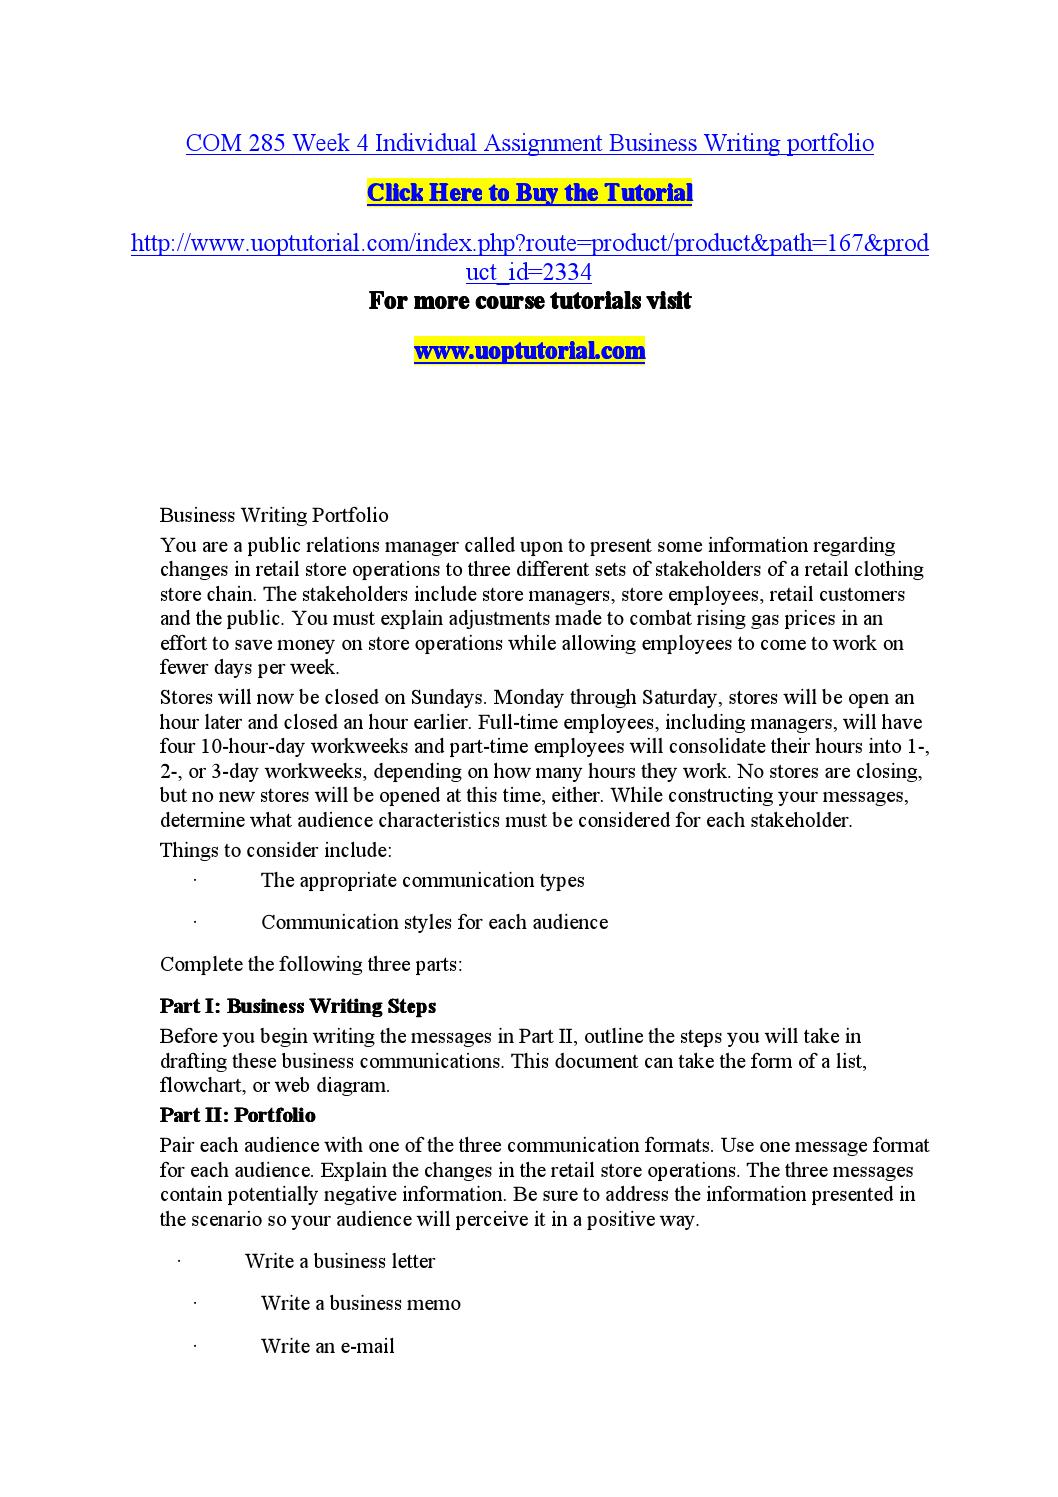 hight resolution of com 285 week 4 individual assignment the appropriate communication types by nagahsa2718 issuu